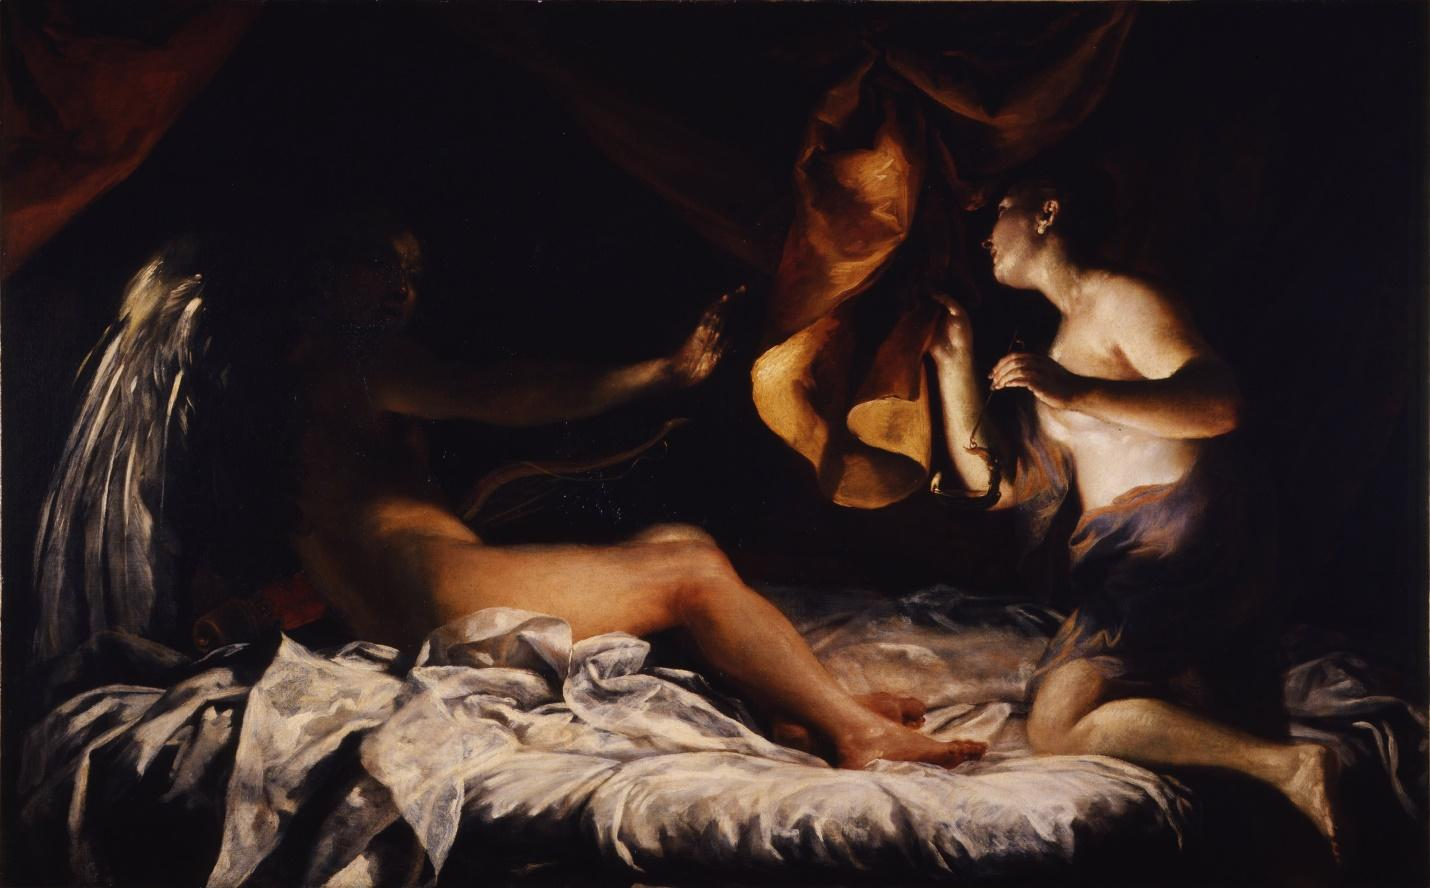 https://upload.wikimedia.org/wikipedia/commons/5/51/Giuseppe_Maria_Crespi_-_Amore_e_Psiche_-_Google_Art_Project.jpg